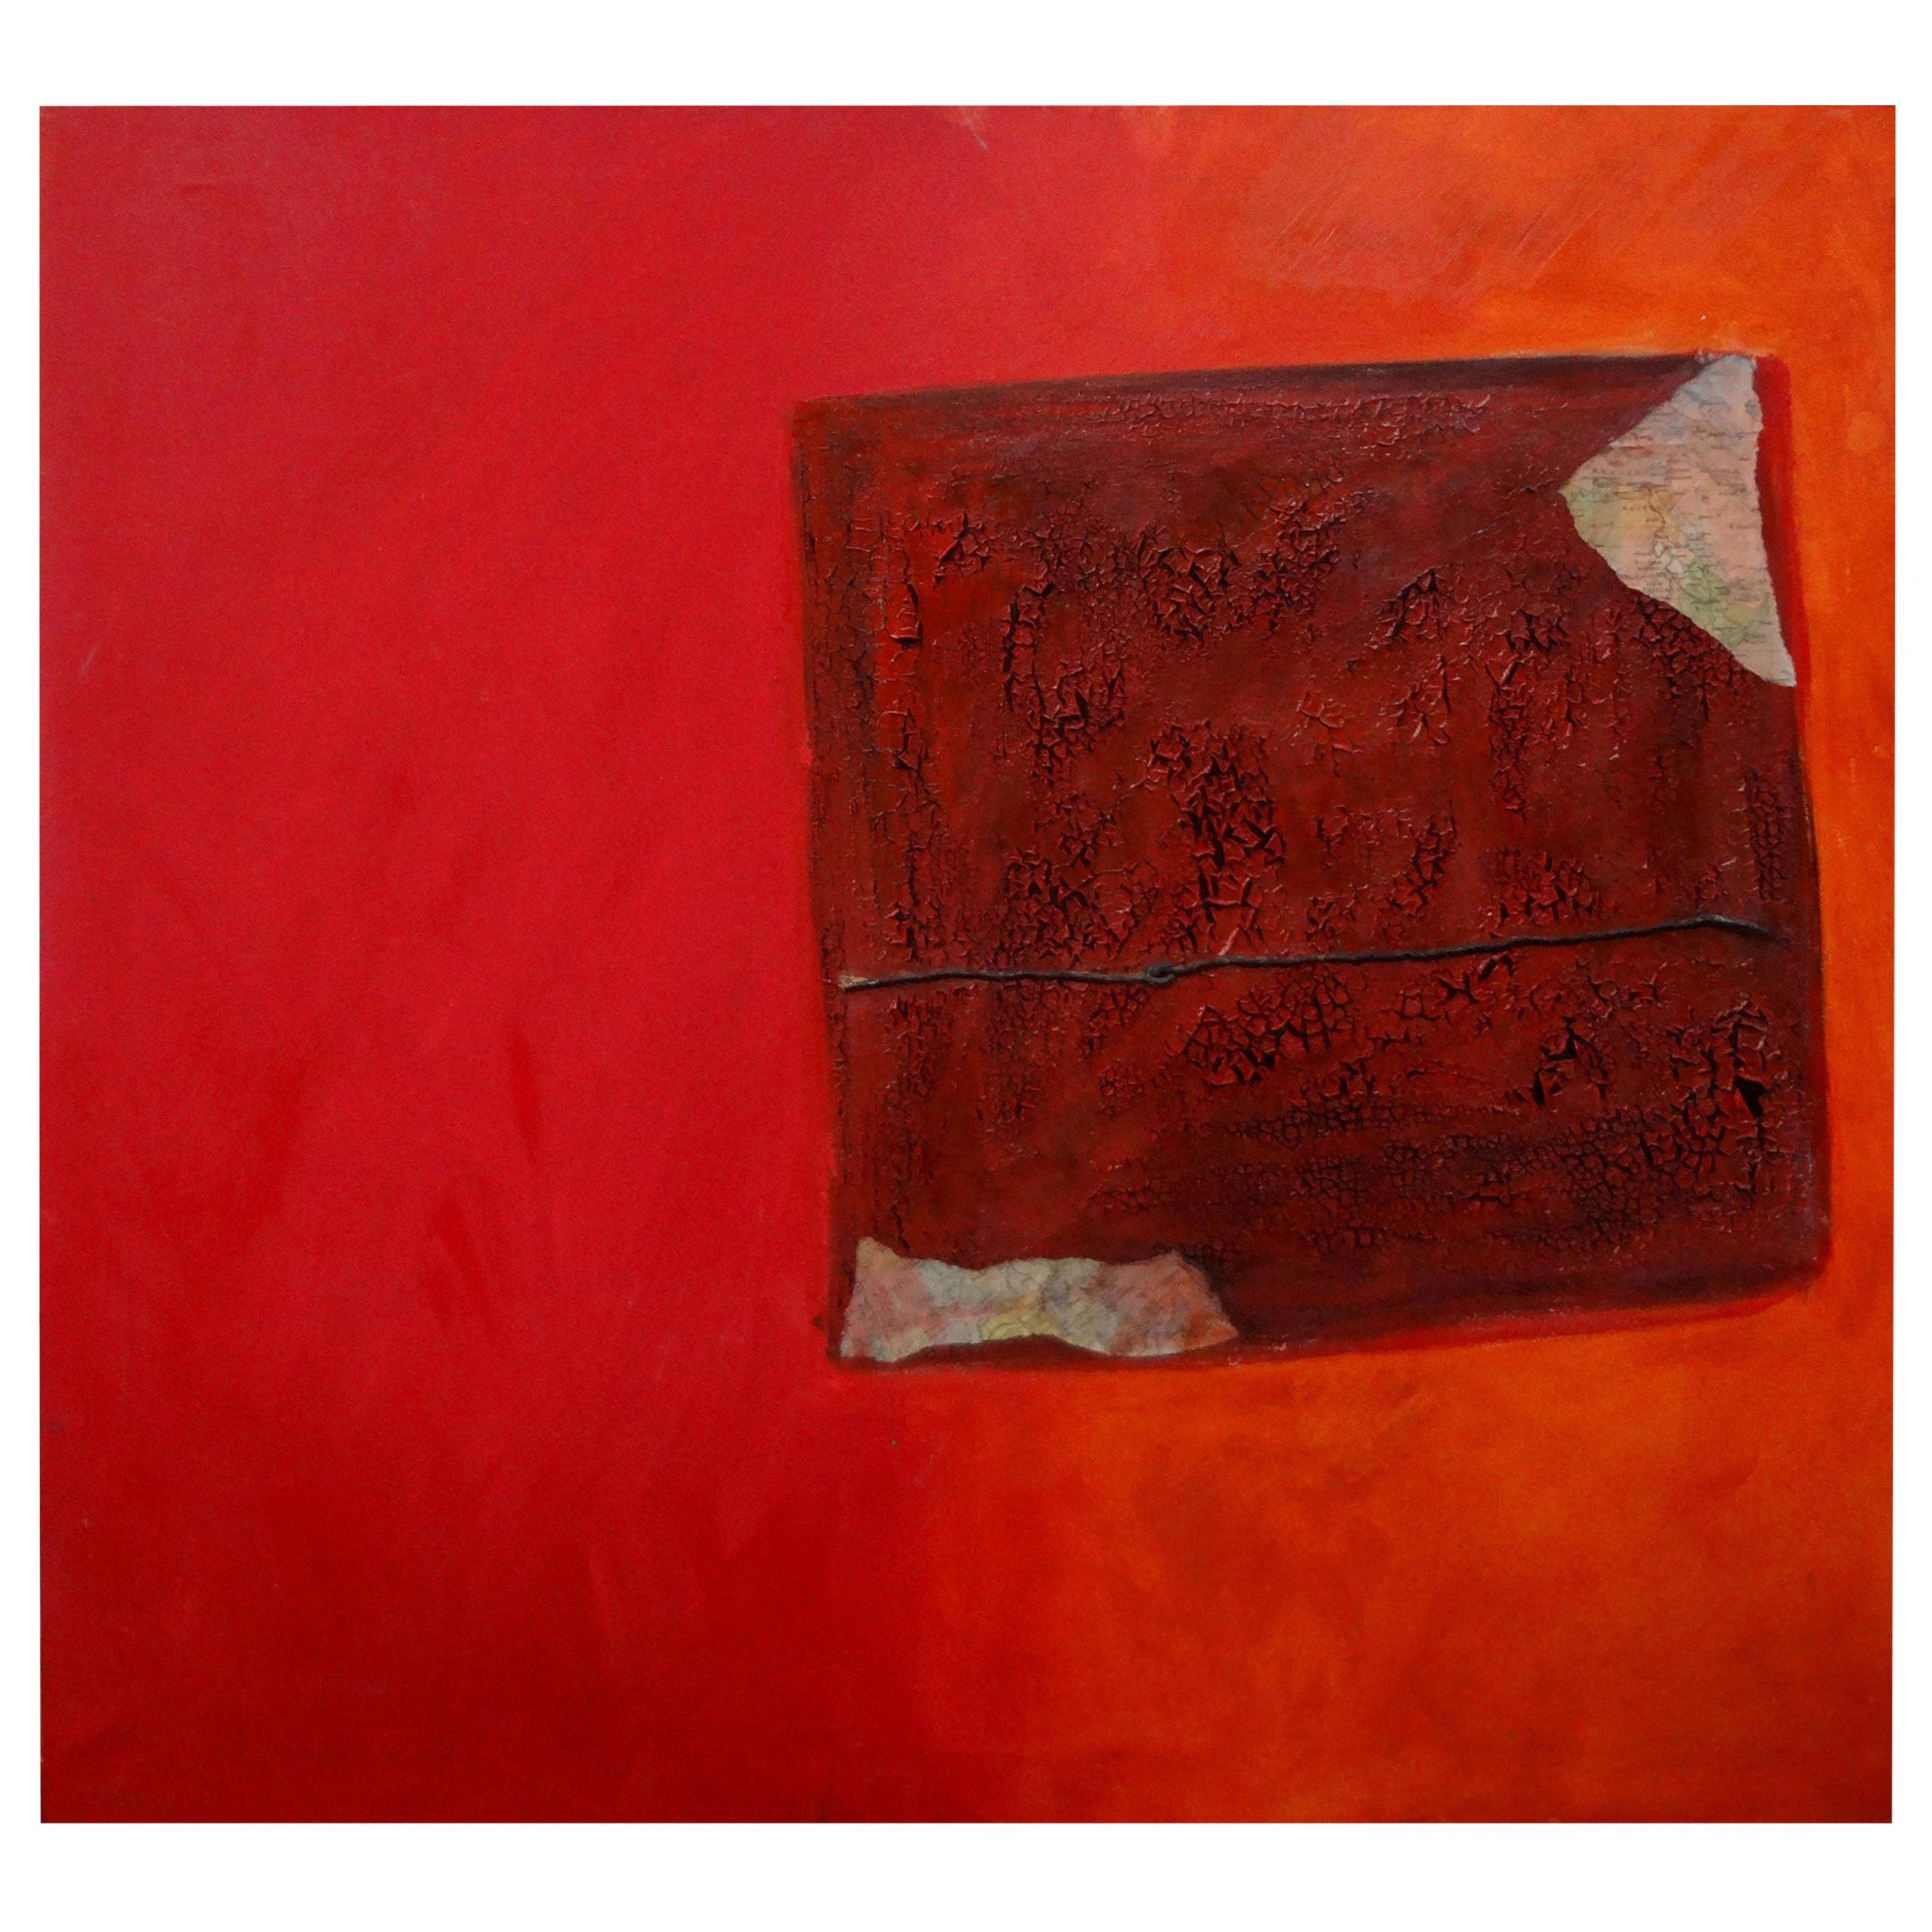 Italian Abstract Oil on Canvas by Fausta Dossi, Milan, circa 2005